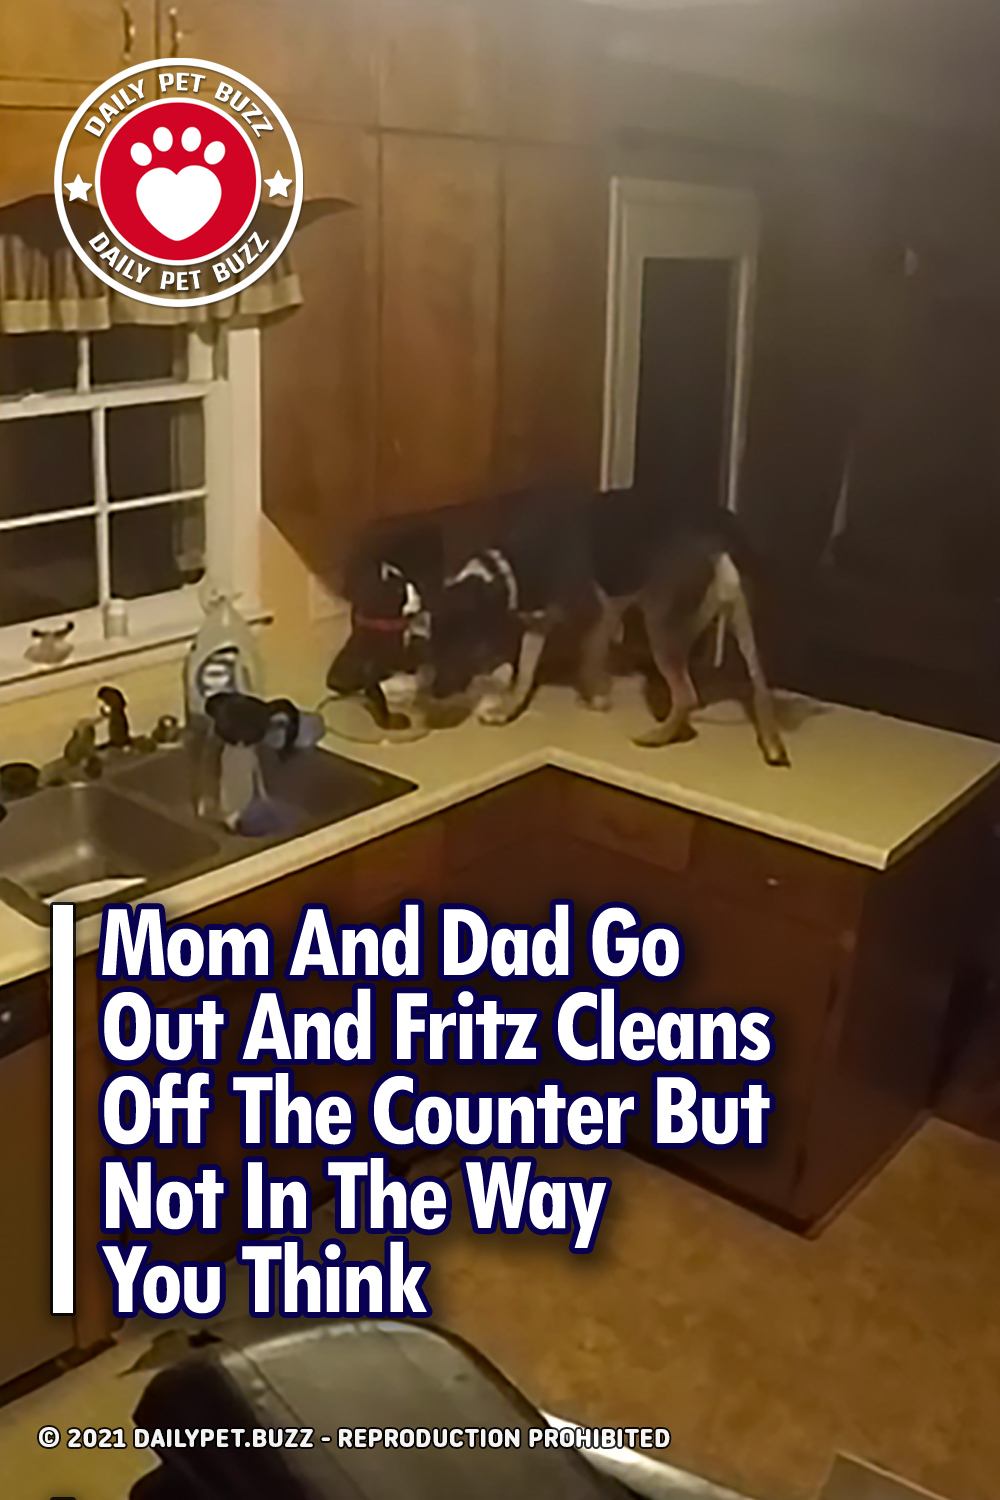 Mom And Dad Go Out And Fritz Cleans Off The Counter But Not In The Way You Think